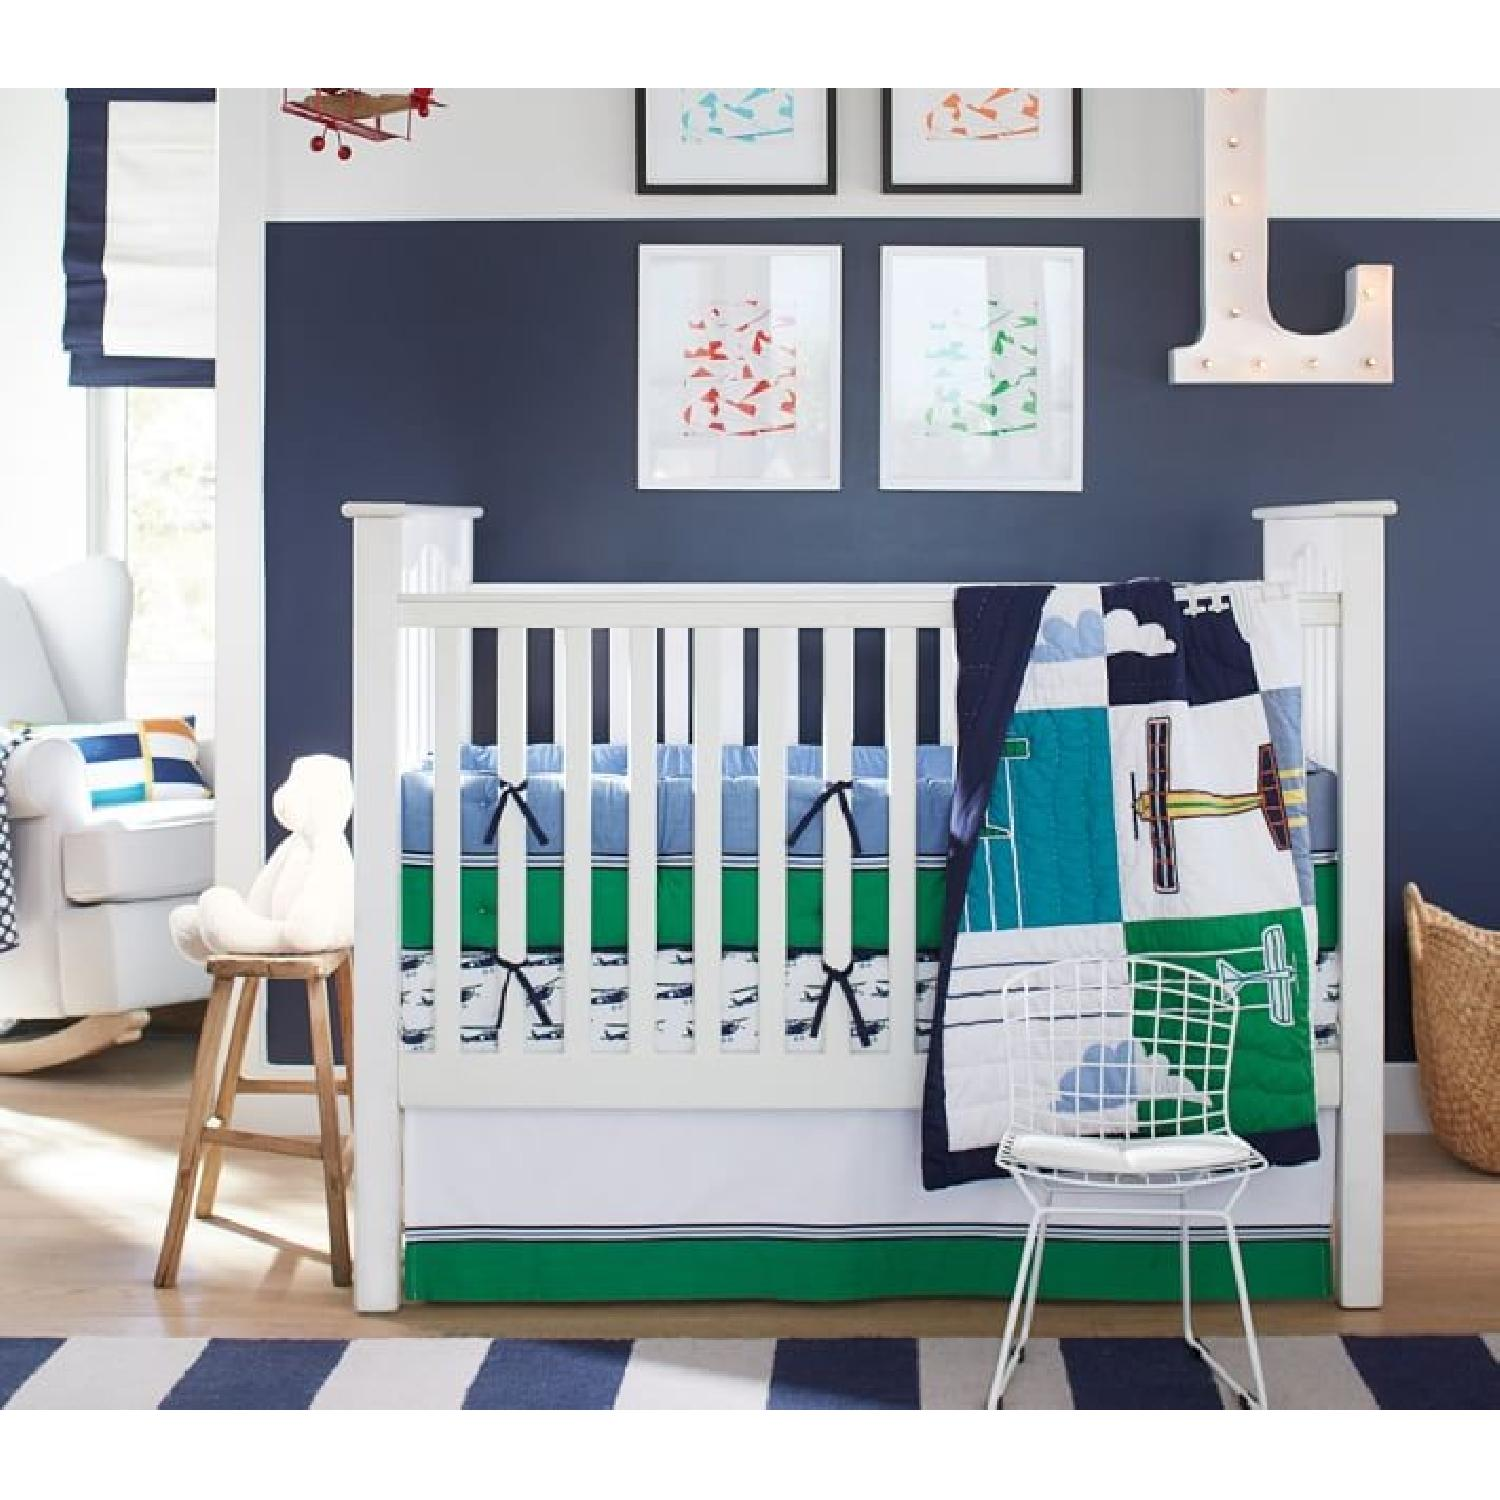 Pottery Barn Kids Rugby Area Rug-1